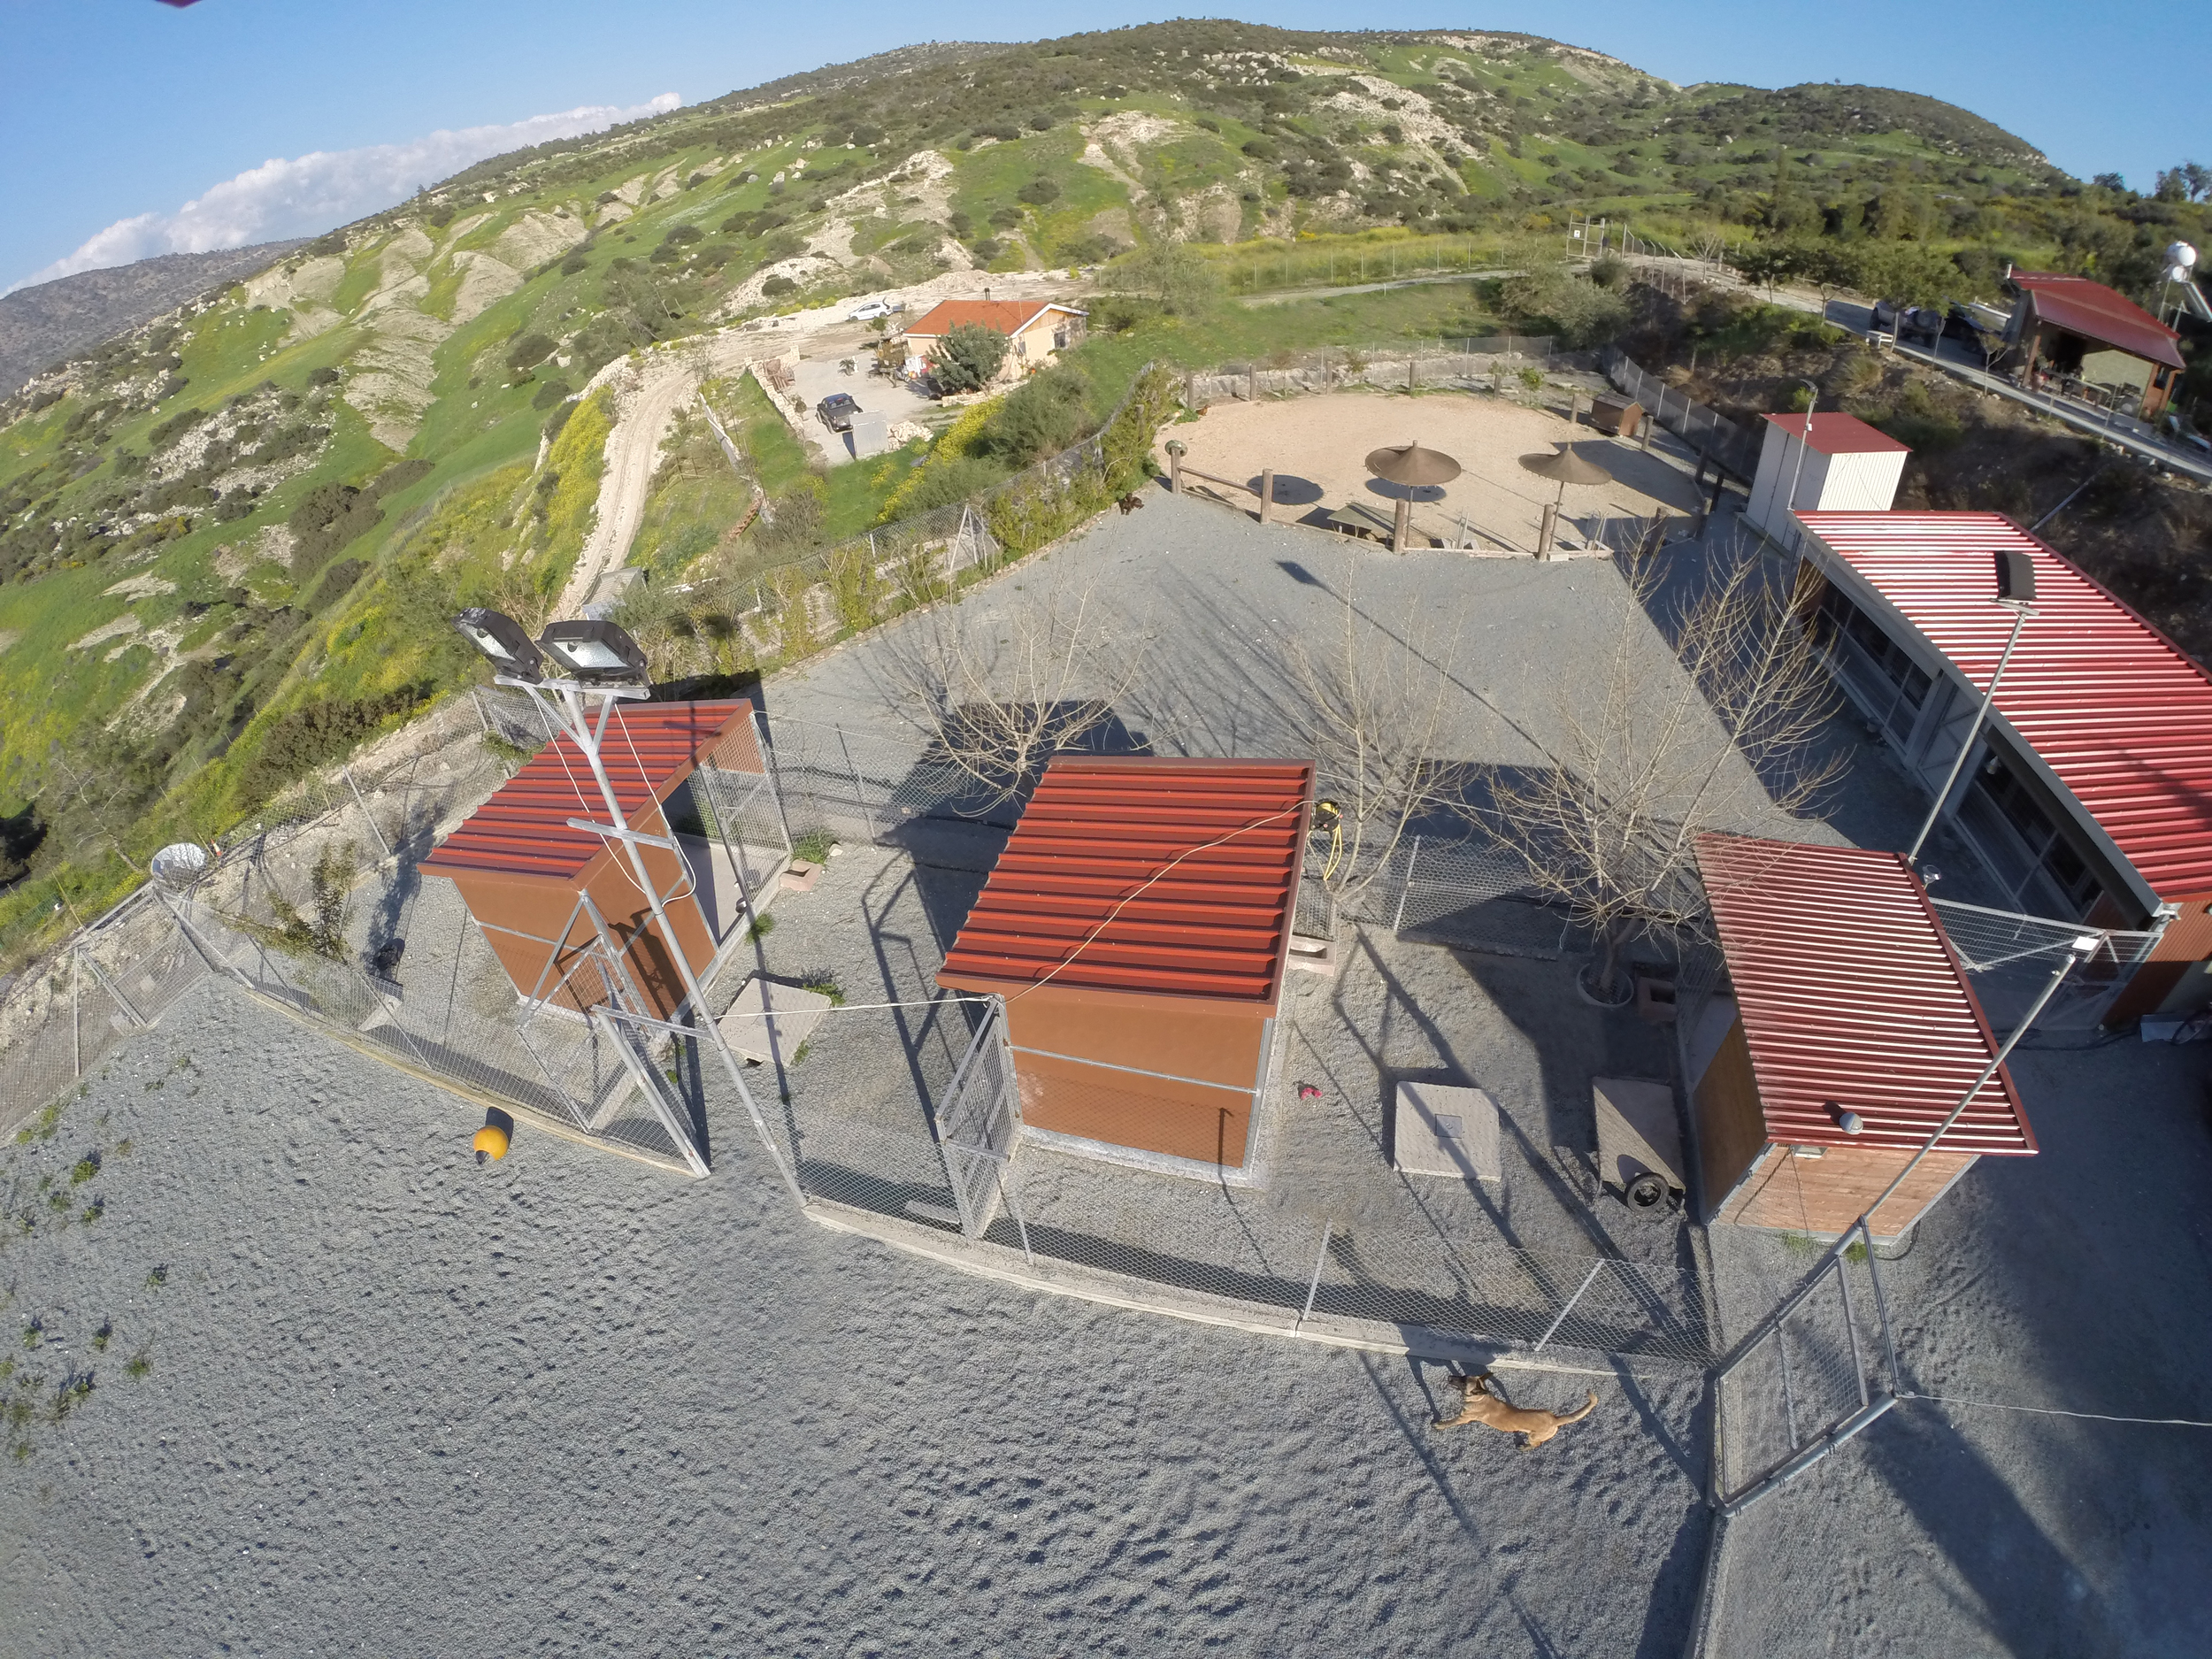 Dog Ranch - Cyprus Dog Hotel | Detached Outdoor Boarding Kennels with Private Yards | Daycare and Training Area